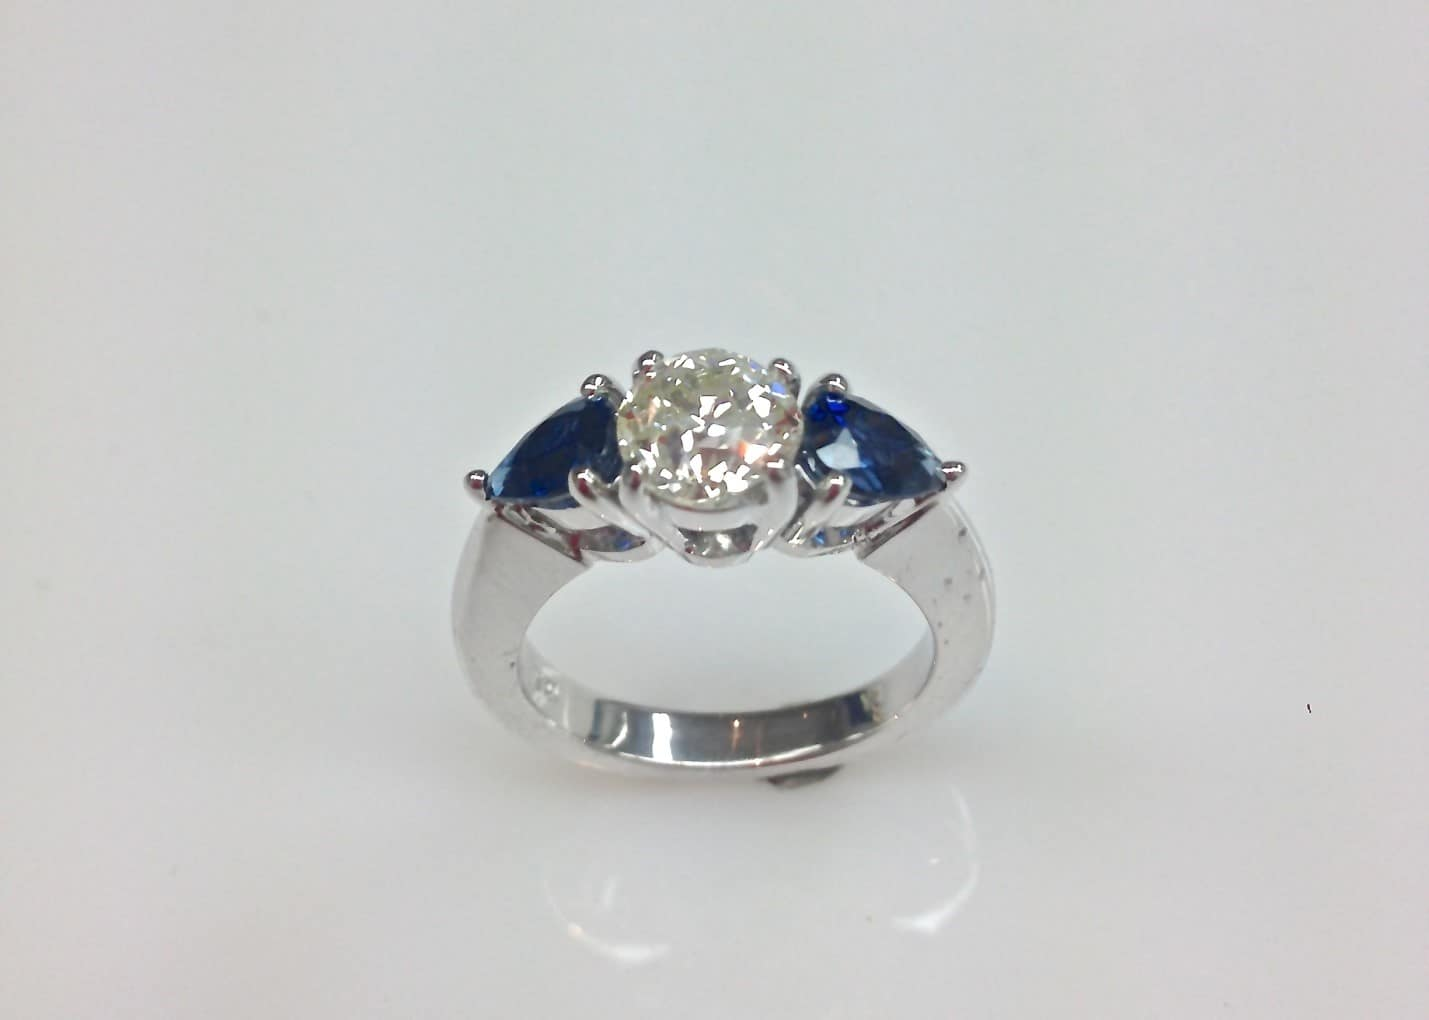 Trilliant Cut Three Stone Sapphire Ring Keezing Kreations